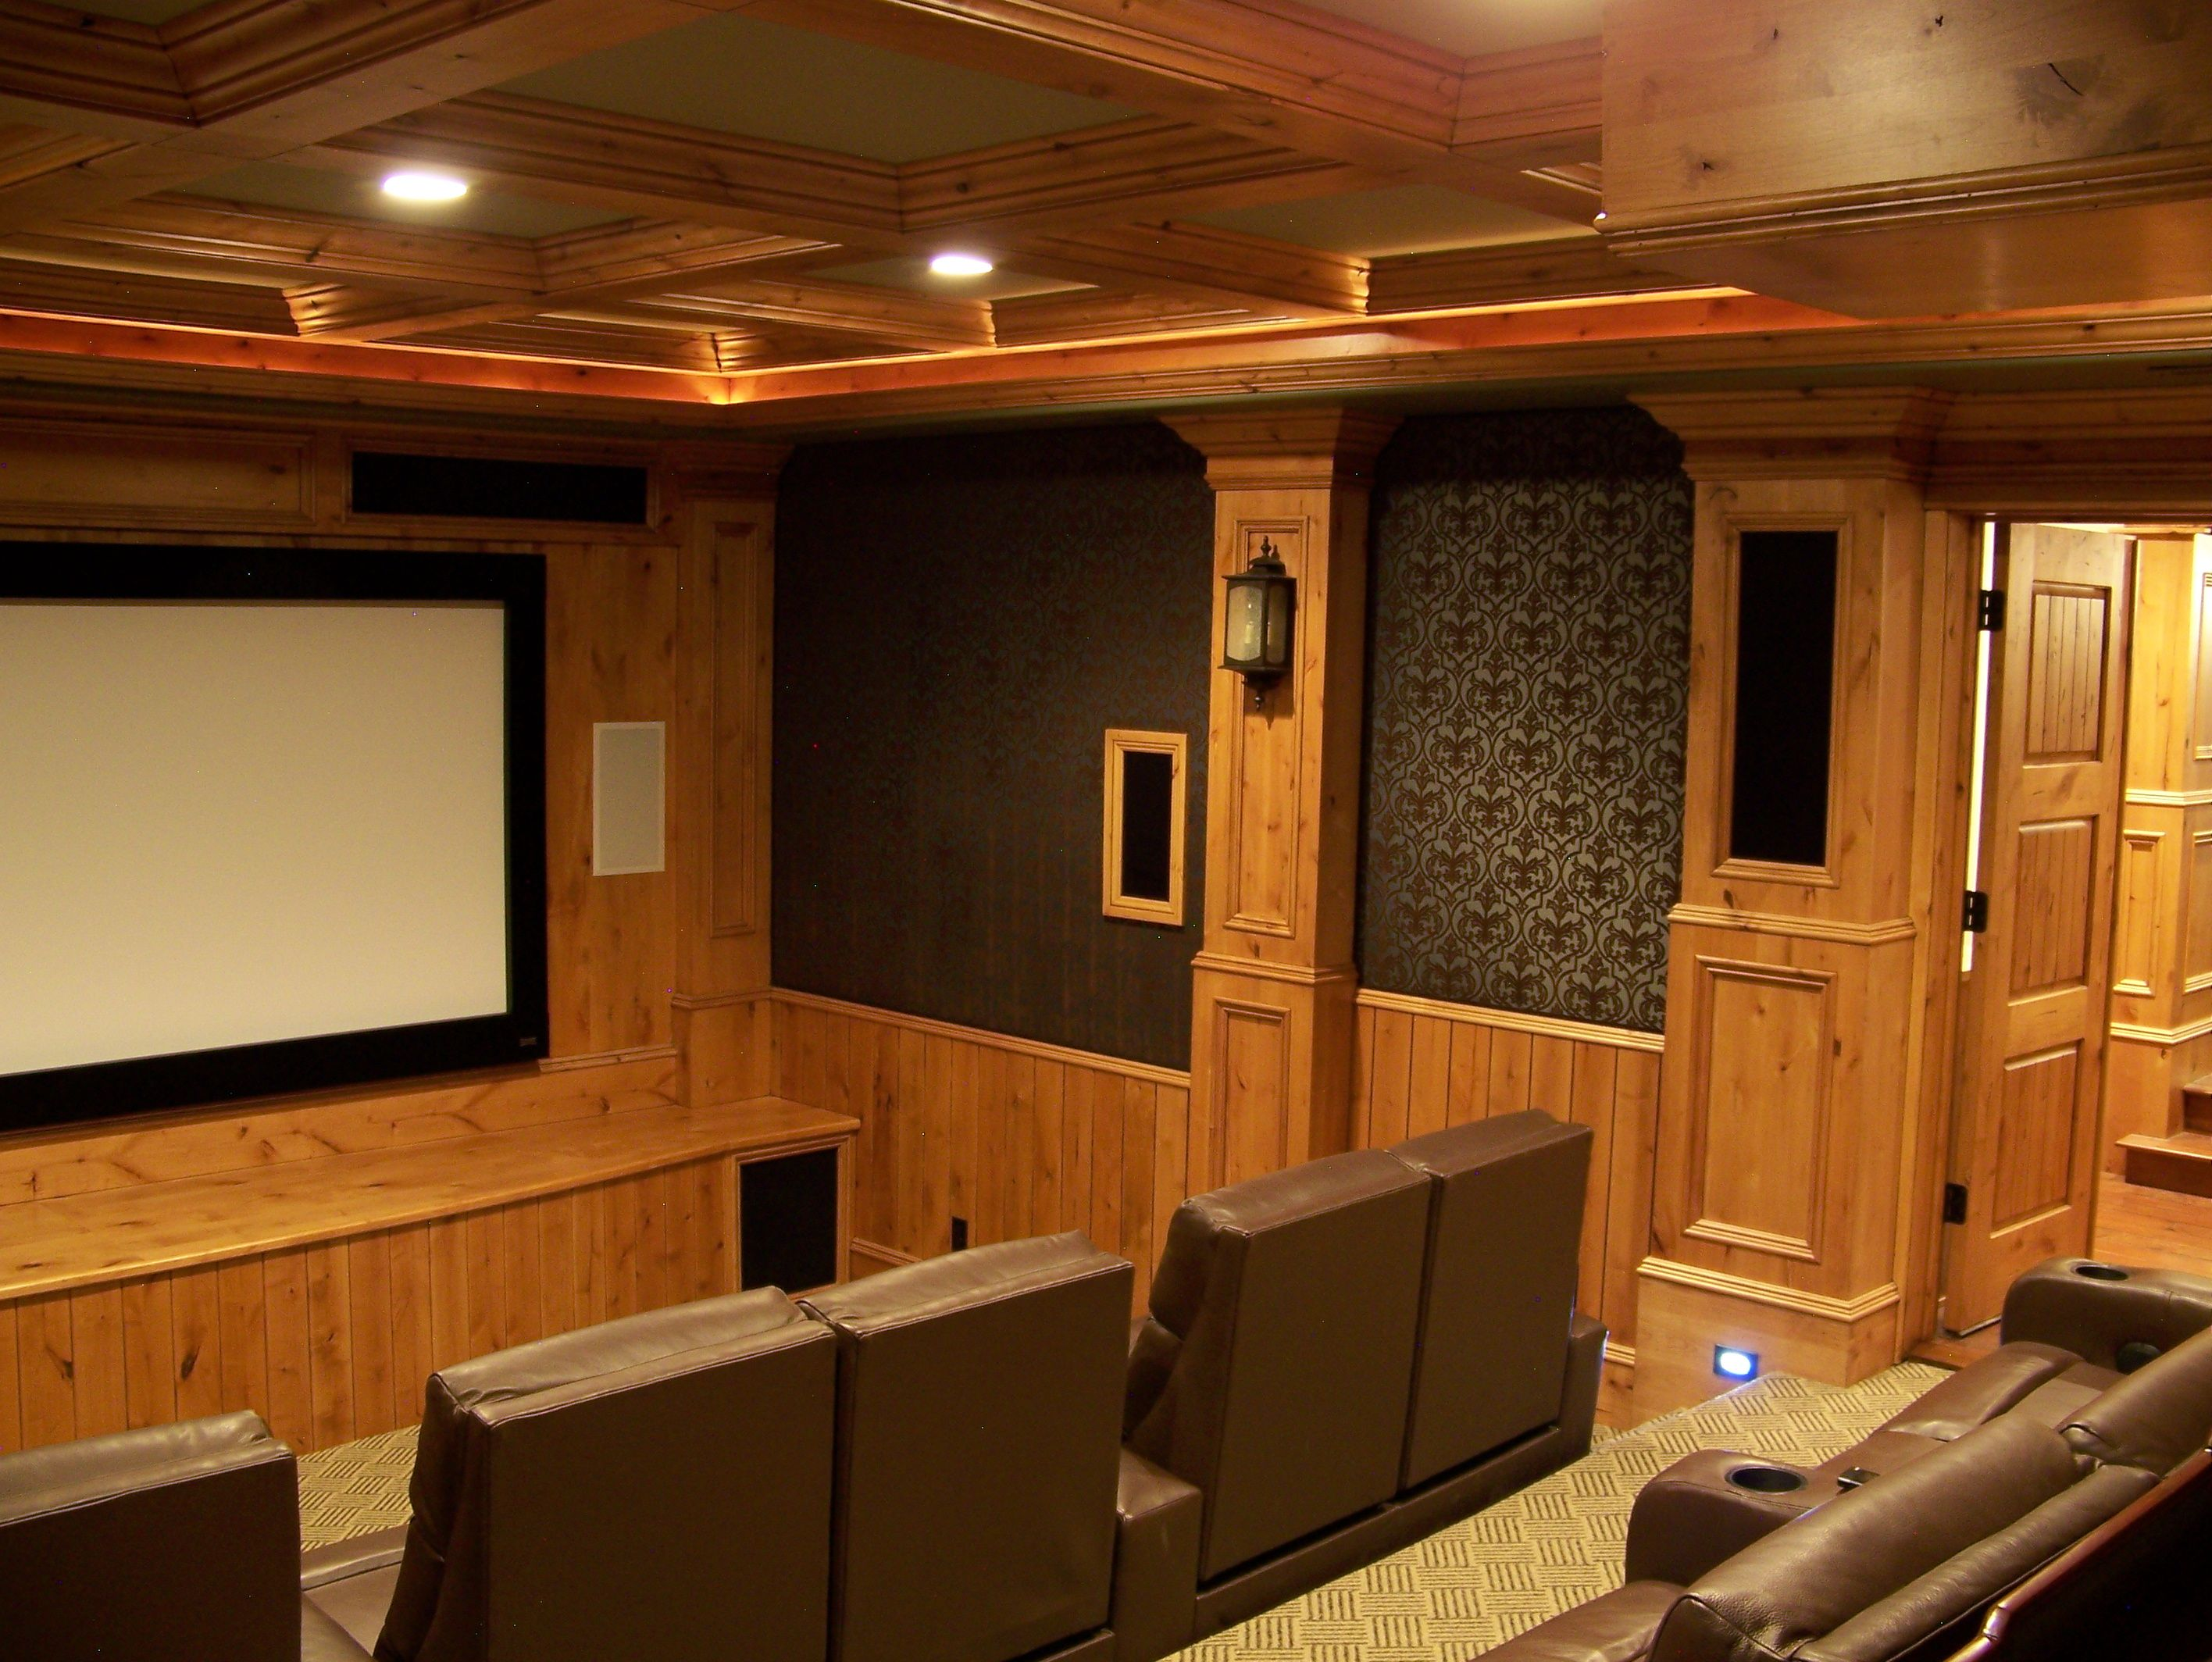 Home Theater Room Design | Interior Design Blog Interior Designer Spotlight  Kathy Cope